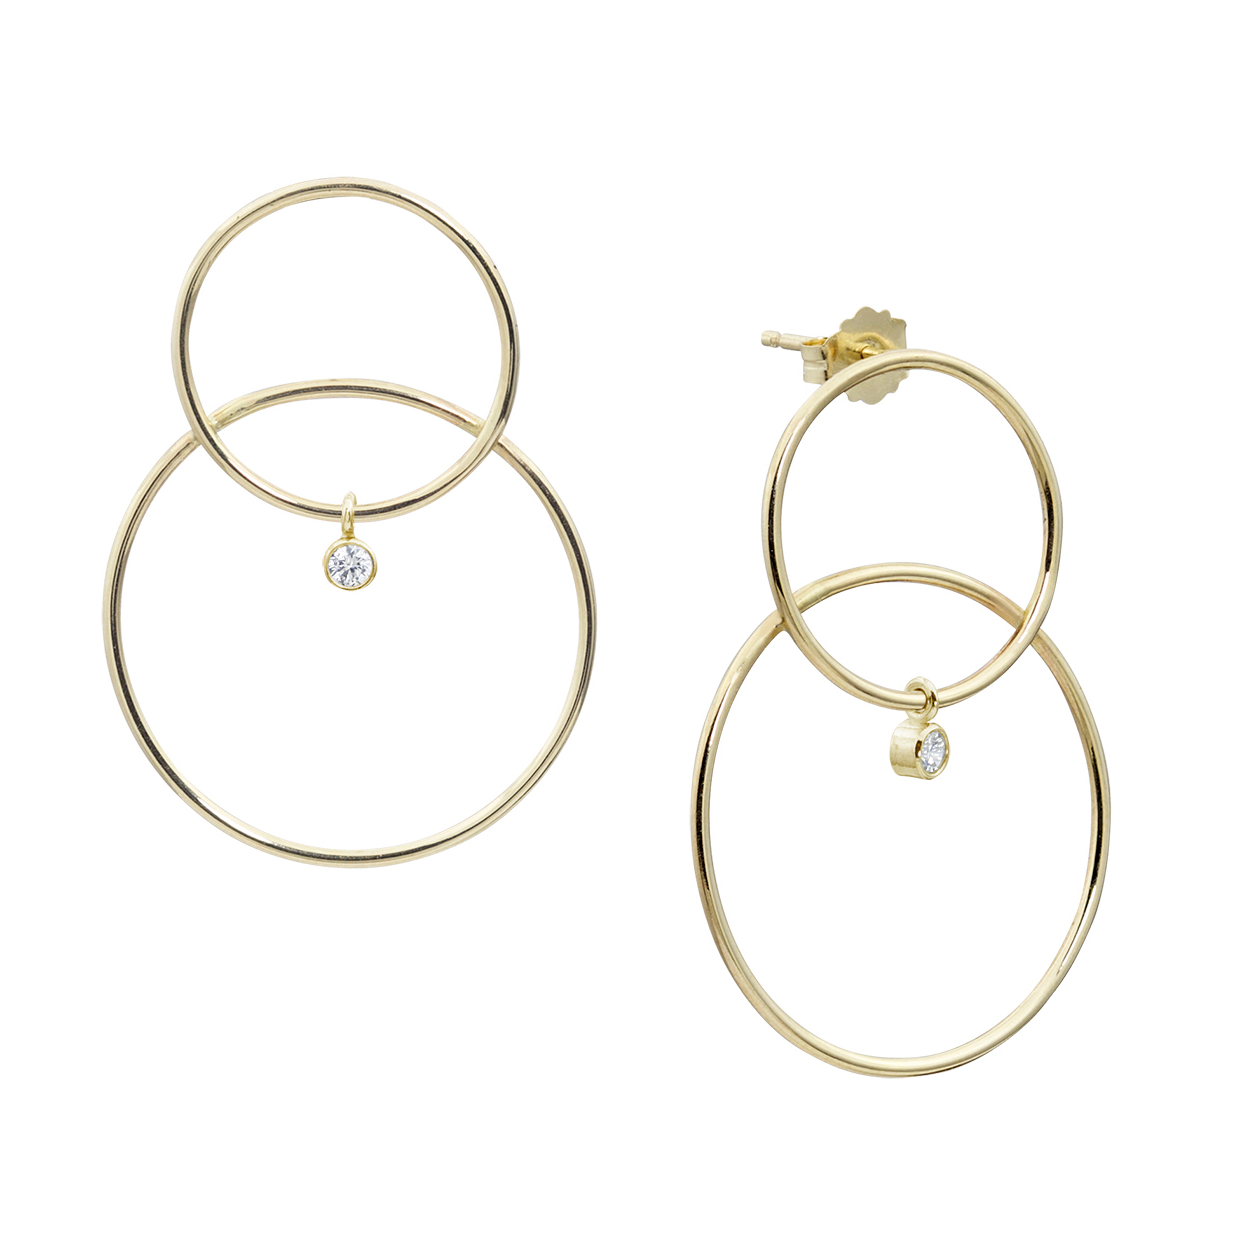 SCARPA DIAMOND EARRINGS